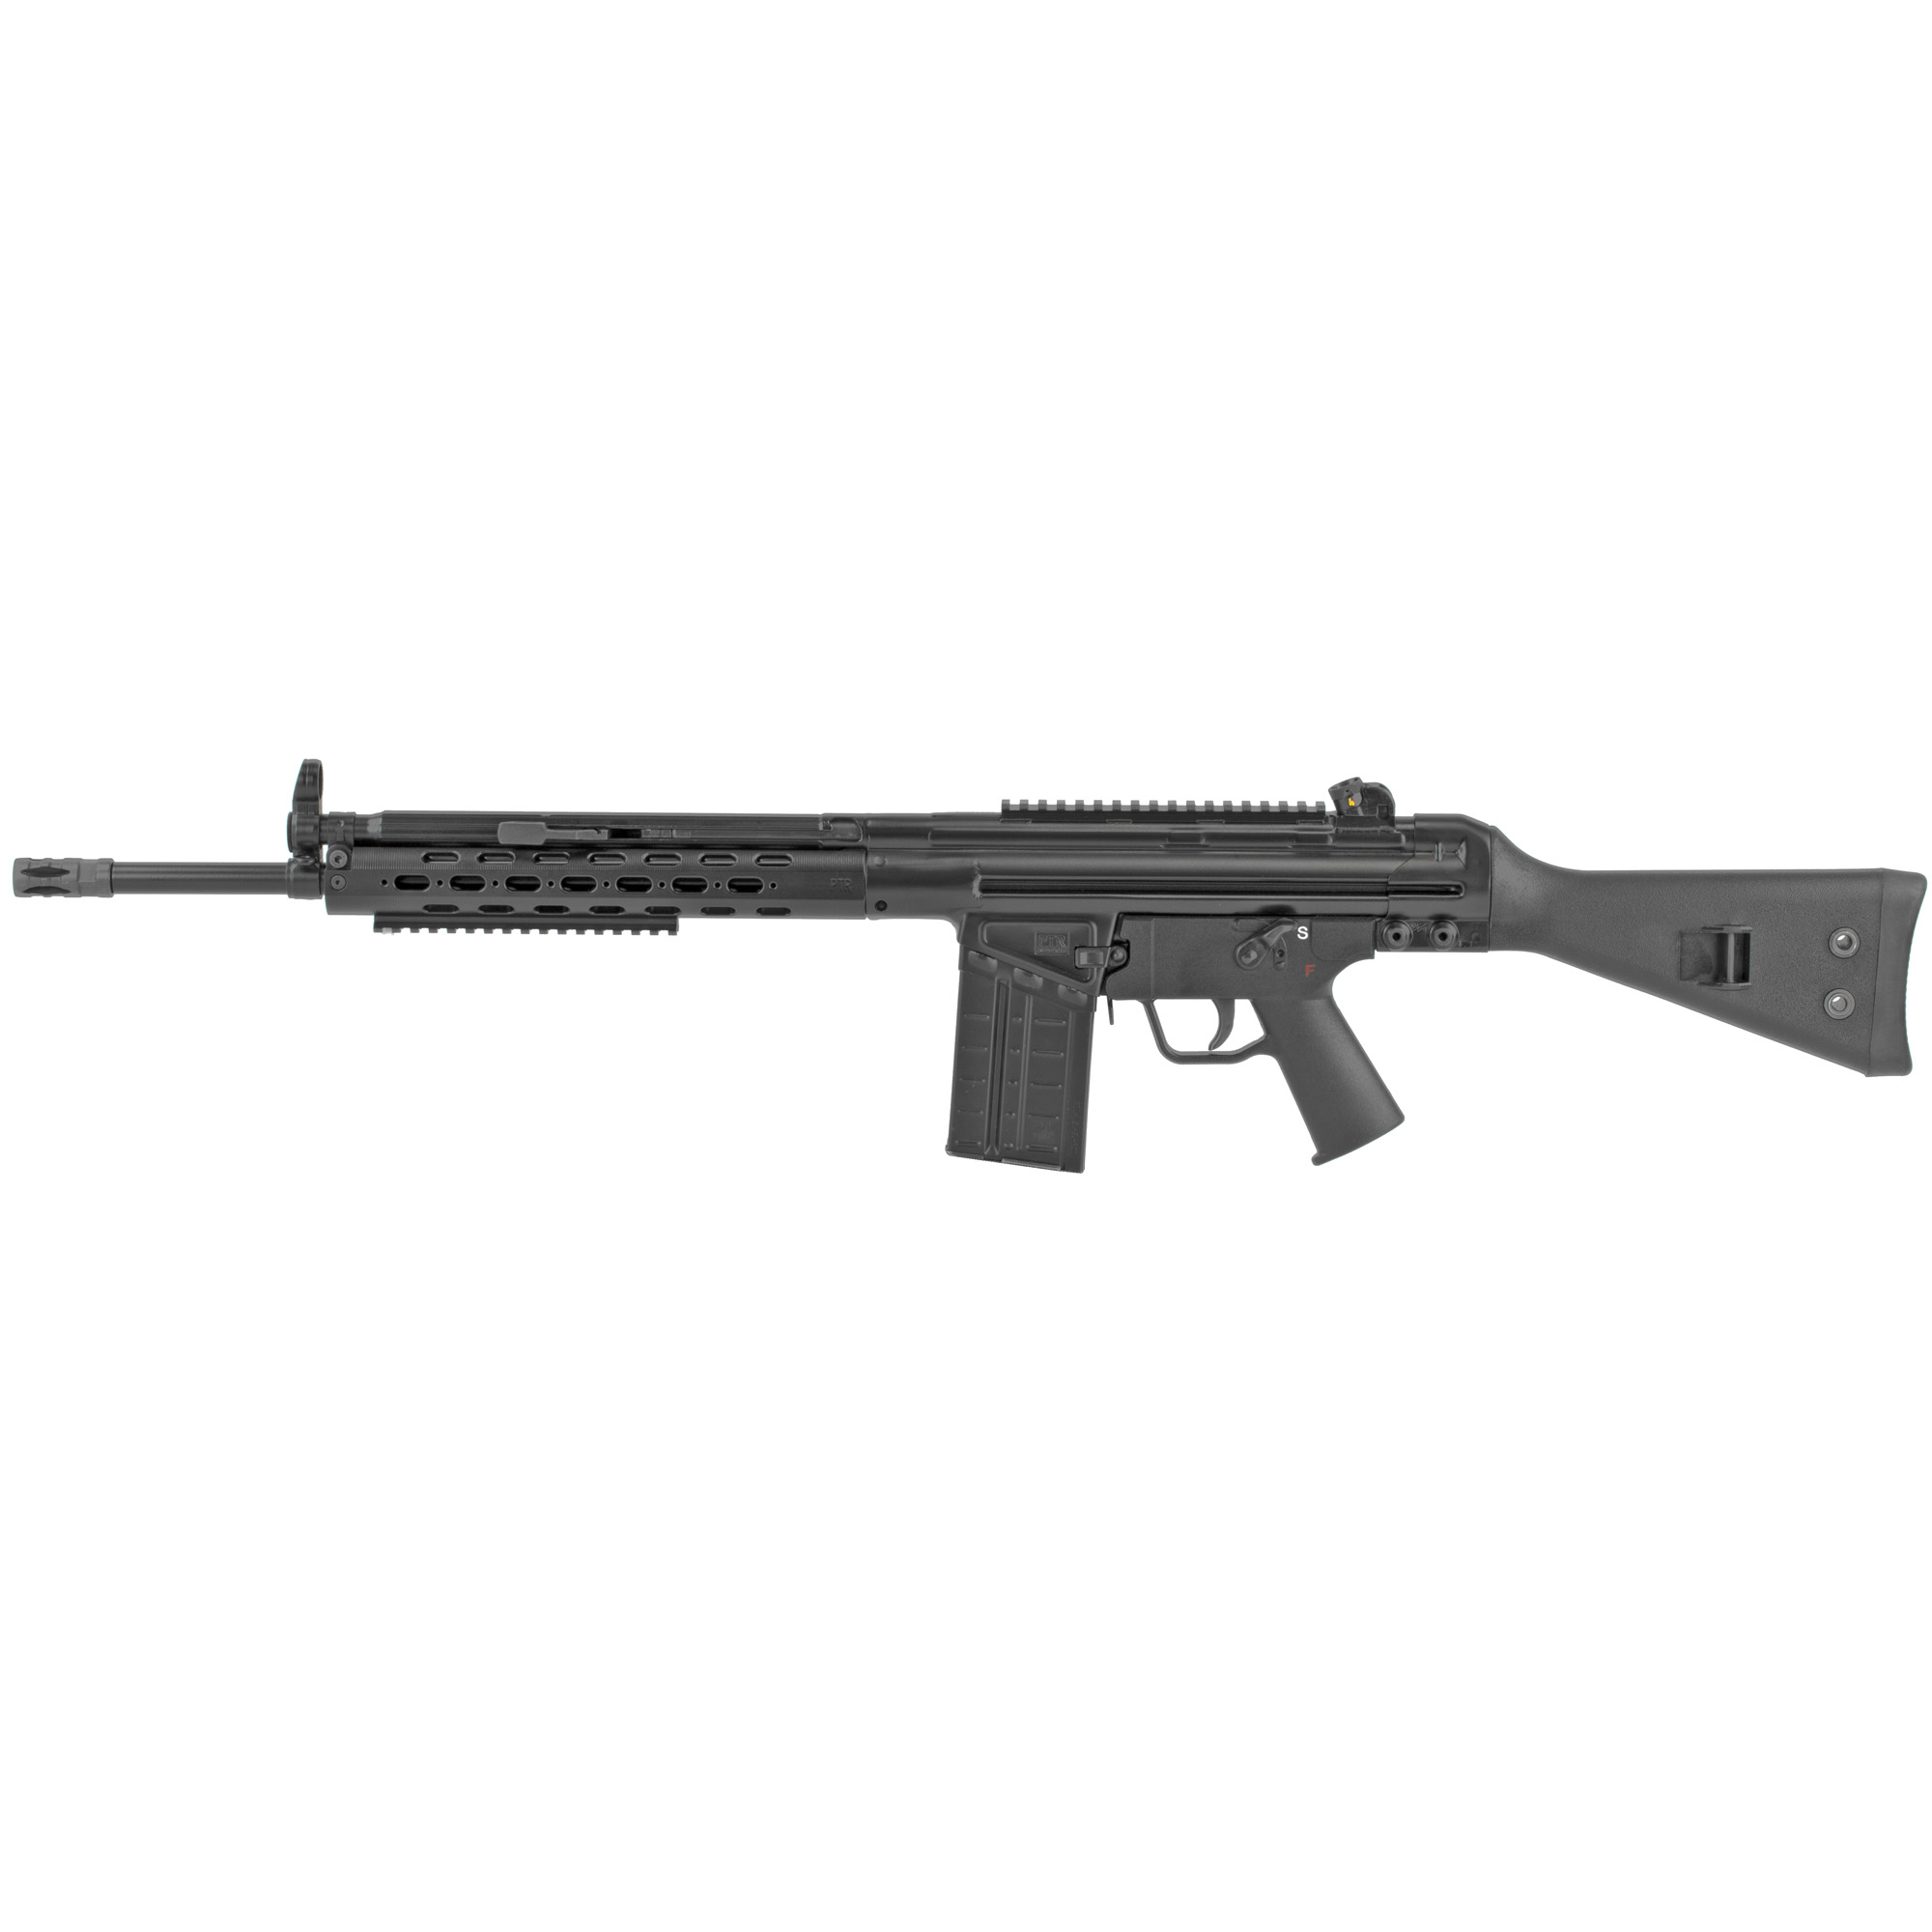 """The FR model features an 18"""" bull barrel and aluminum milled handguard with added 6.5"""" accessory rail. The precision-welded top rail allows for adding your favorite optic or you can use the traditional iron sights (included)."""